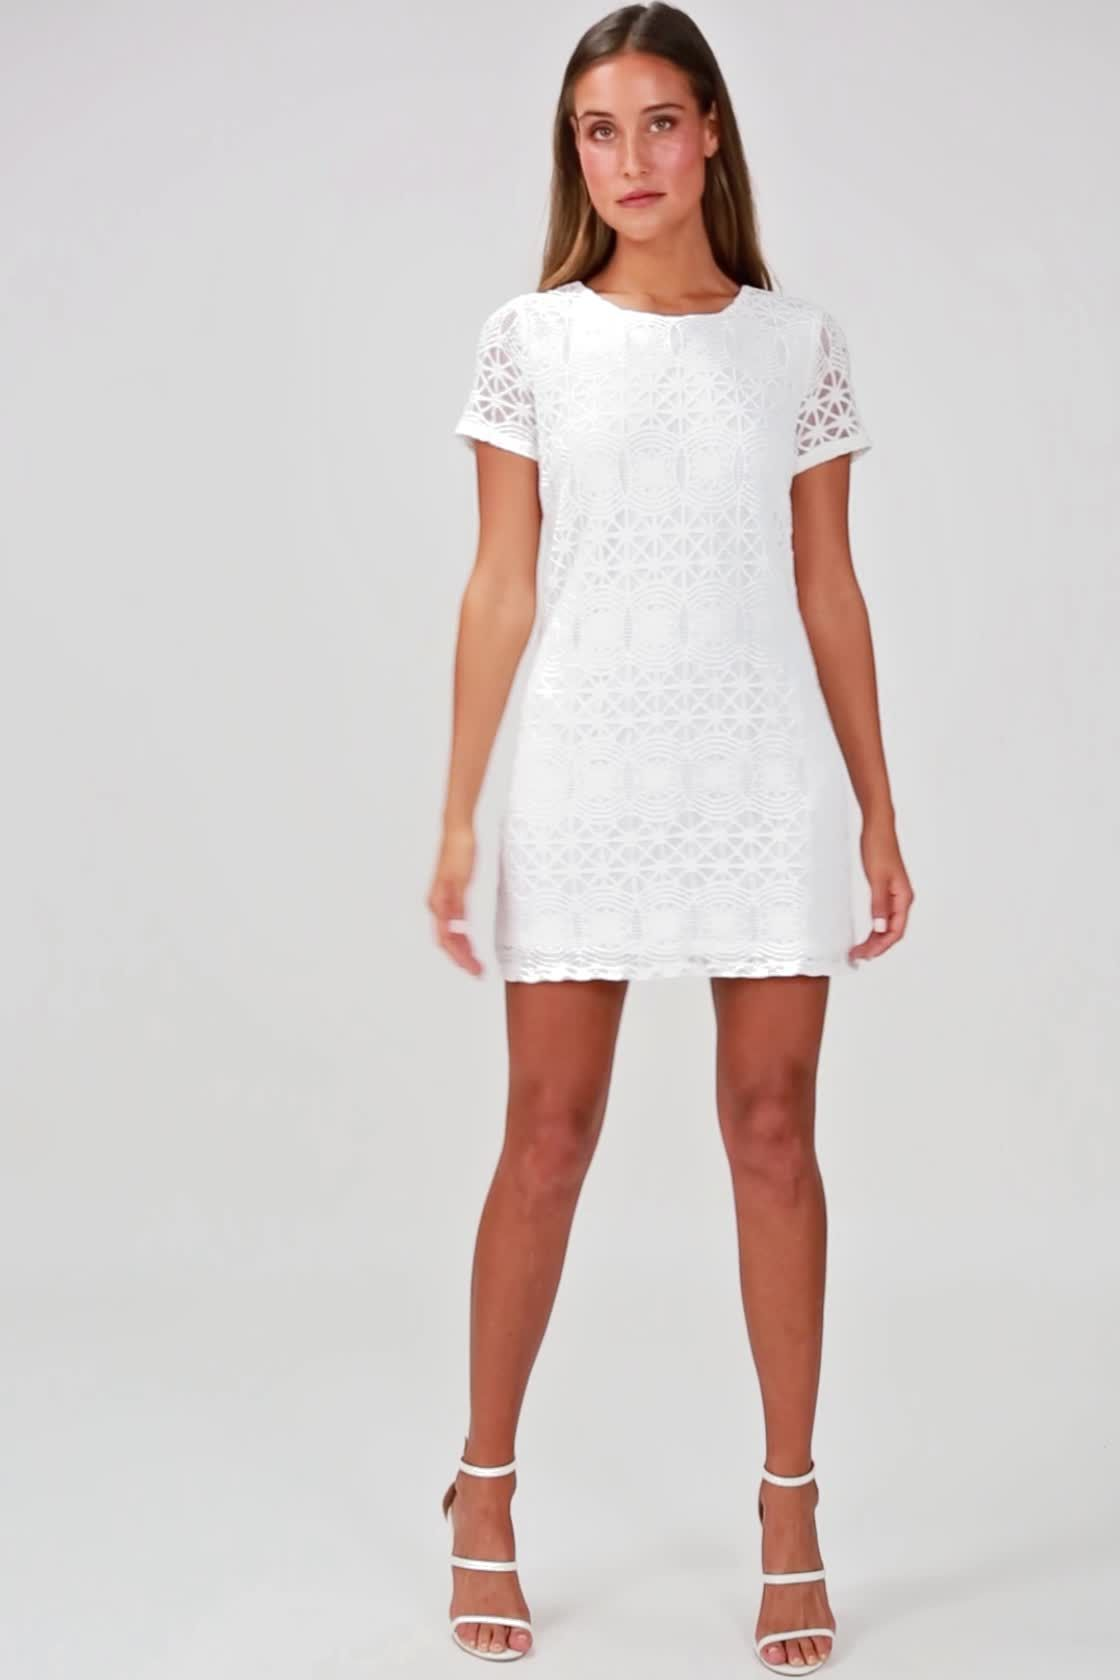 Love You For Eternity White Lace Shift Dress in 2019  09561bad9ab